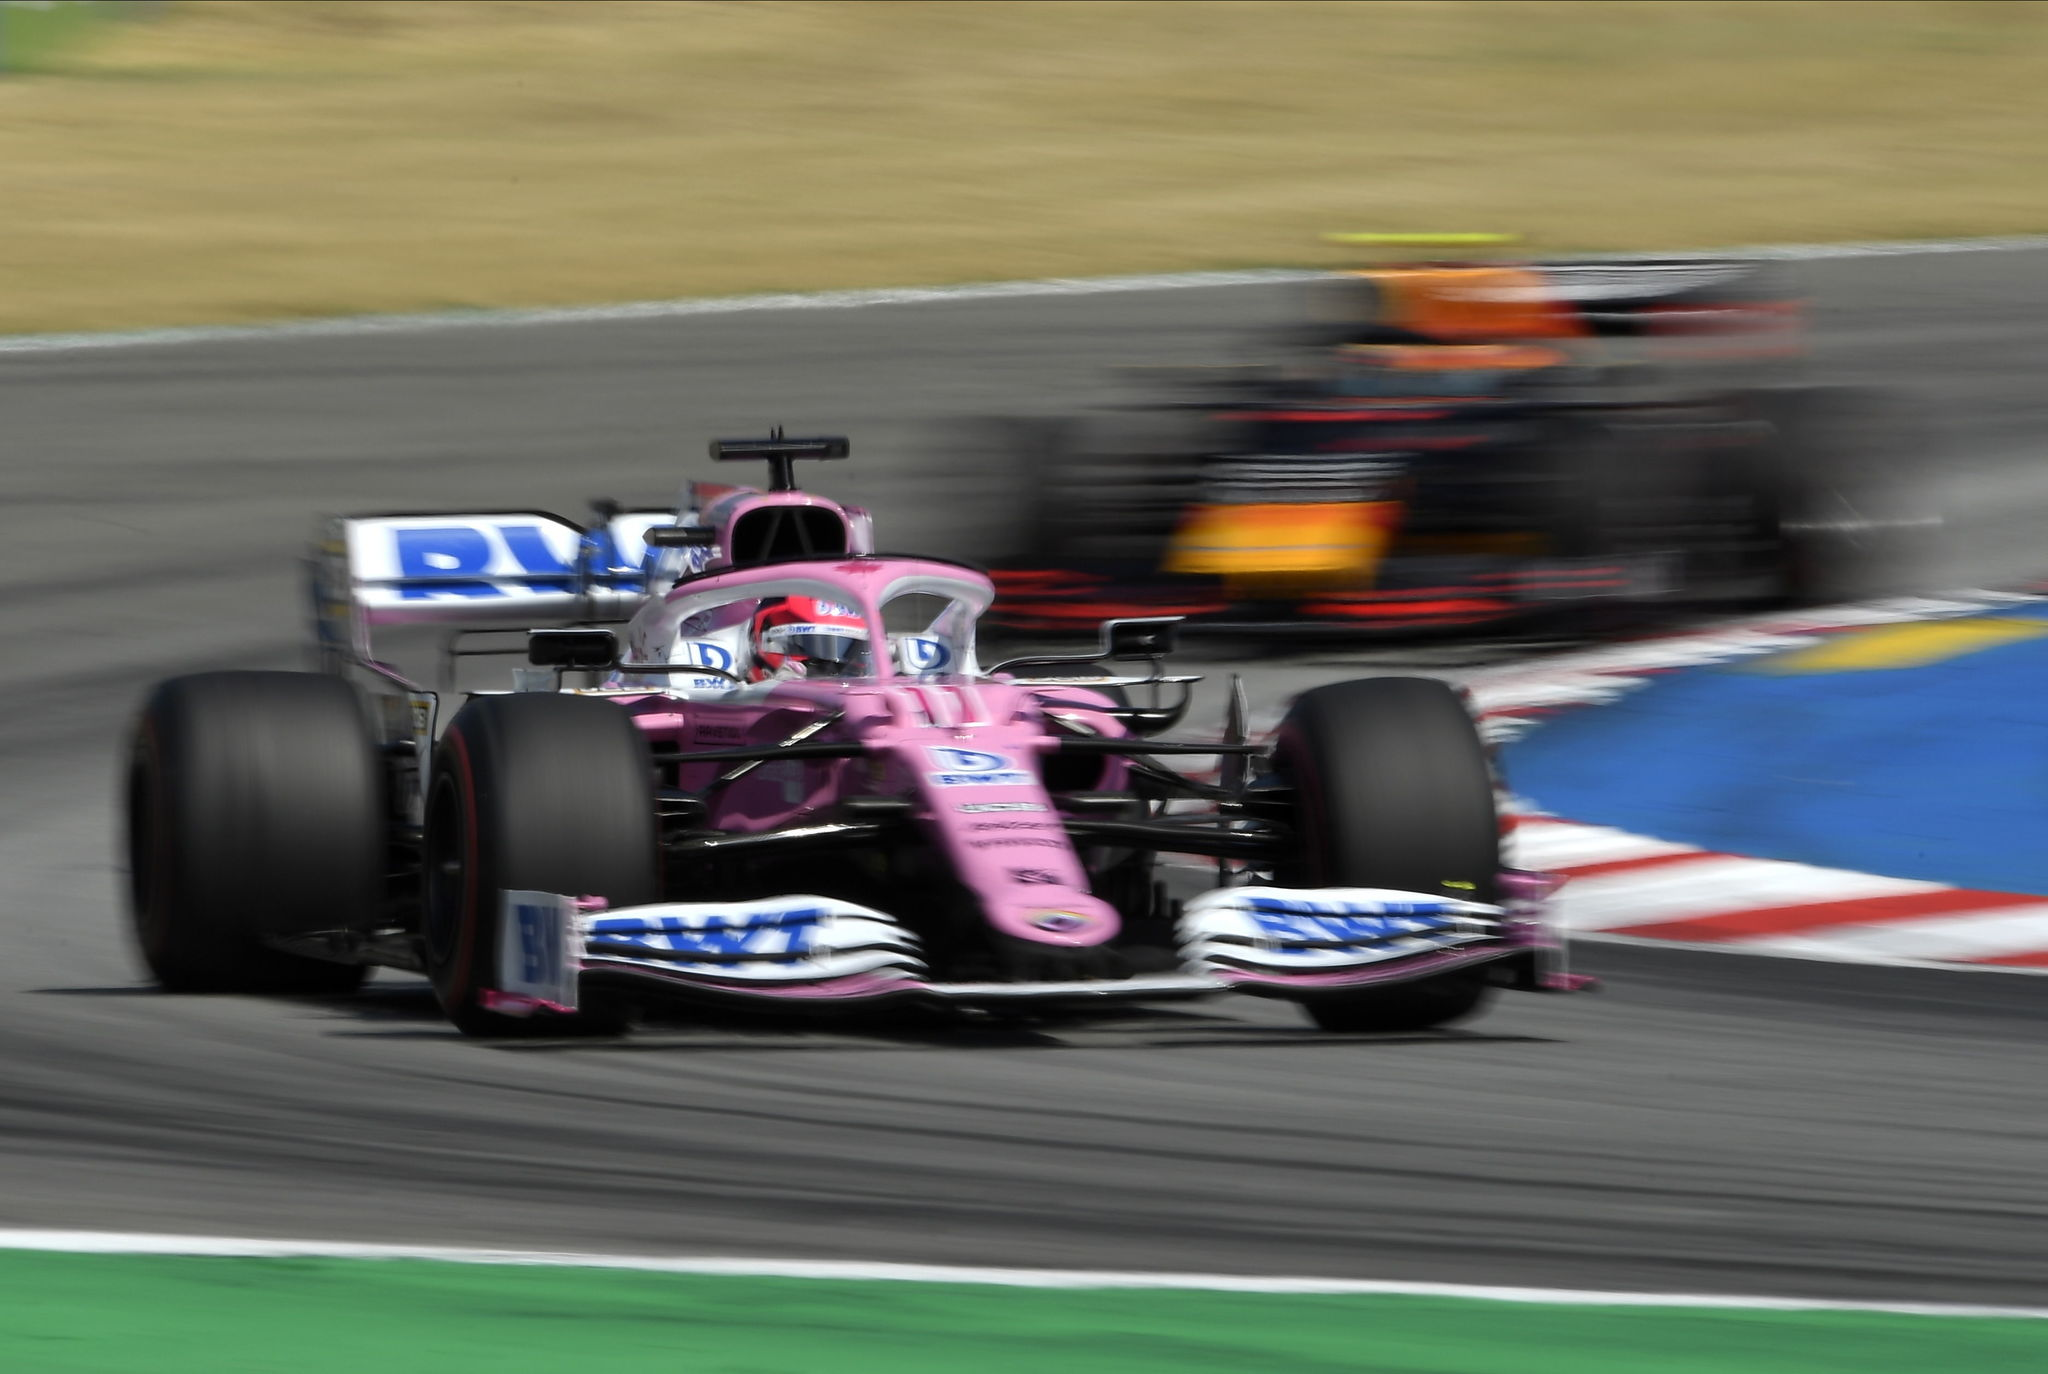 Montmelo (Spain), 16/08/2020.- Mexican Formula One driver lt;HIT gt;Sergio lt;/HIT gt; lt;HIT gt;Perez lt;/HIT gt; of BWT Racing Point in action during the Formula One Grand Prix of Spain at the Circuit de Barcelona-Catalunya in Montmelo, Spain, 16 August 2020. (Fórmula Uno, España) EFE/EPA/Josep Lago / Pool